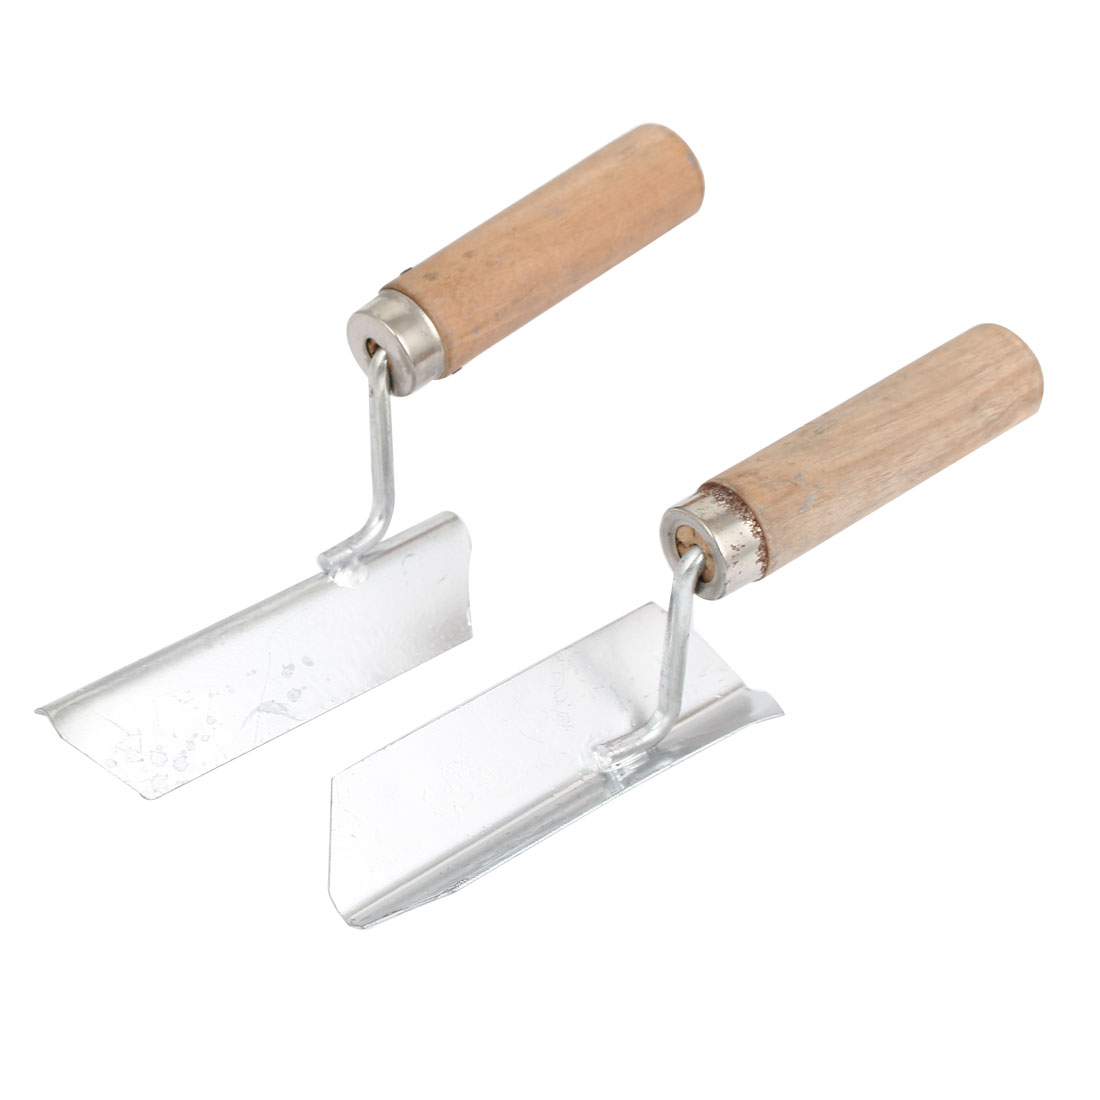 Wooden Handle Drywall External Outside Internal Inside Corner Trowel Set